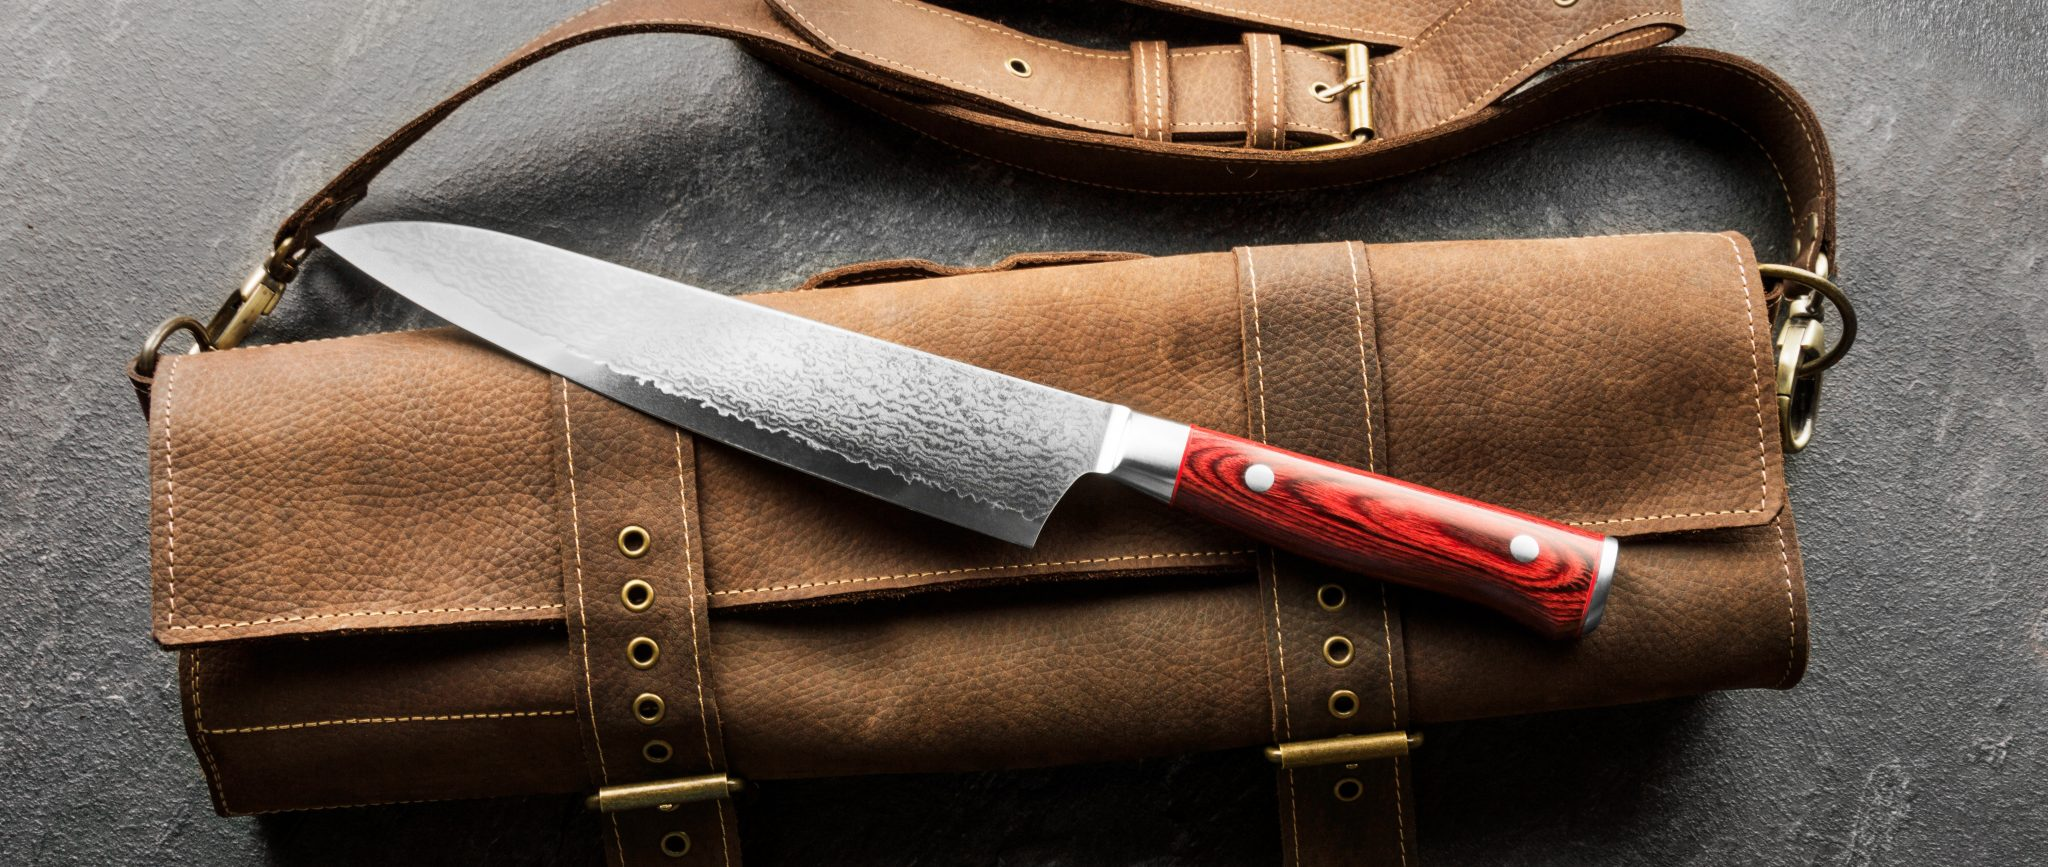 The 5 Best Chef's Knives You Need In Your Kitchen